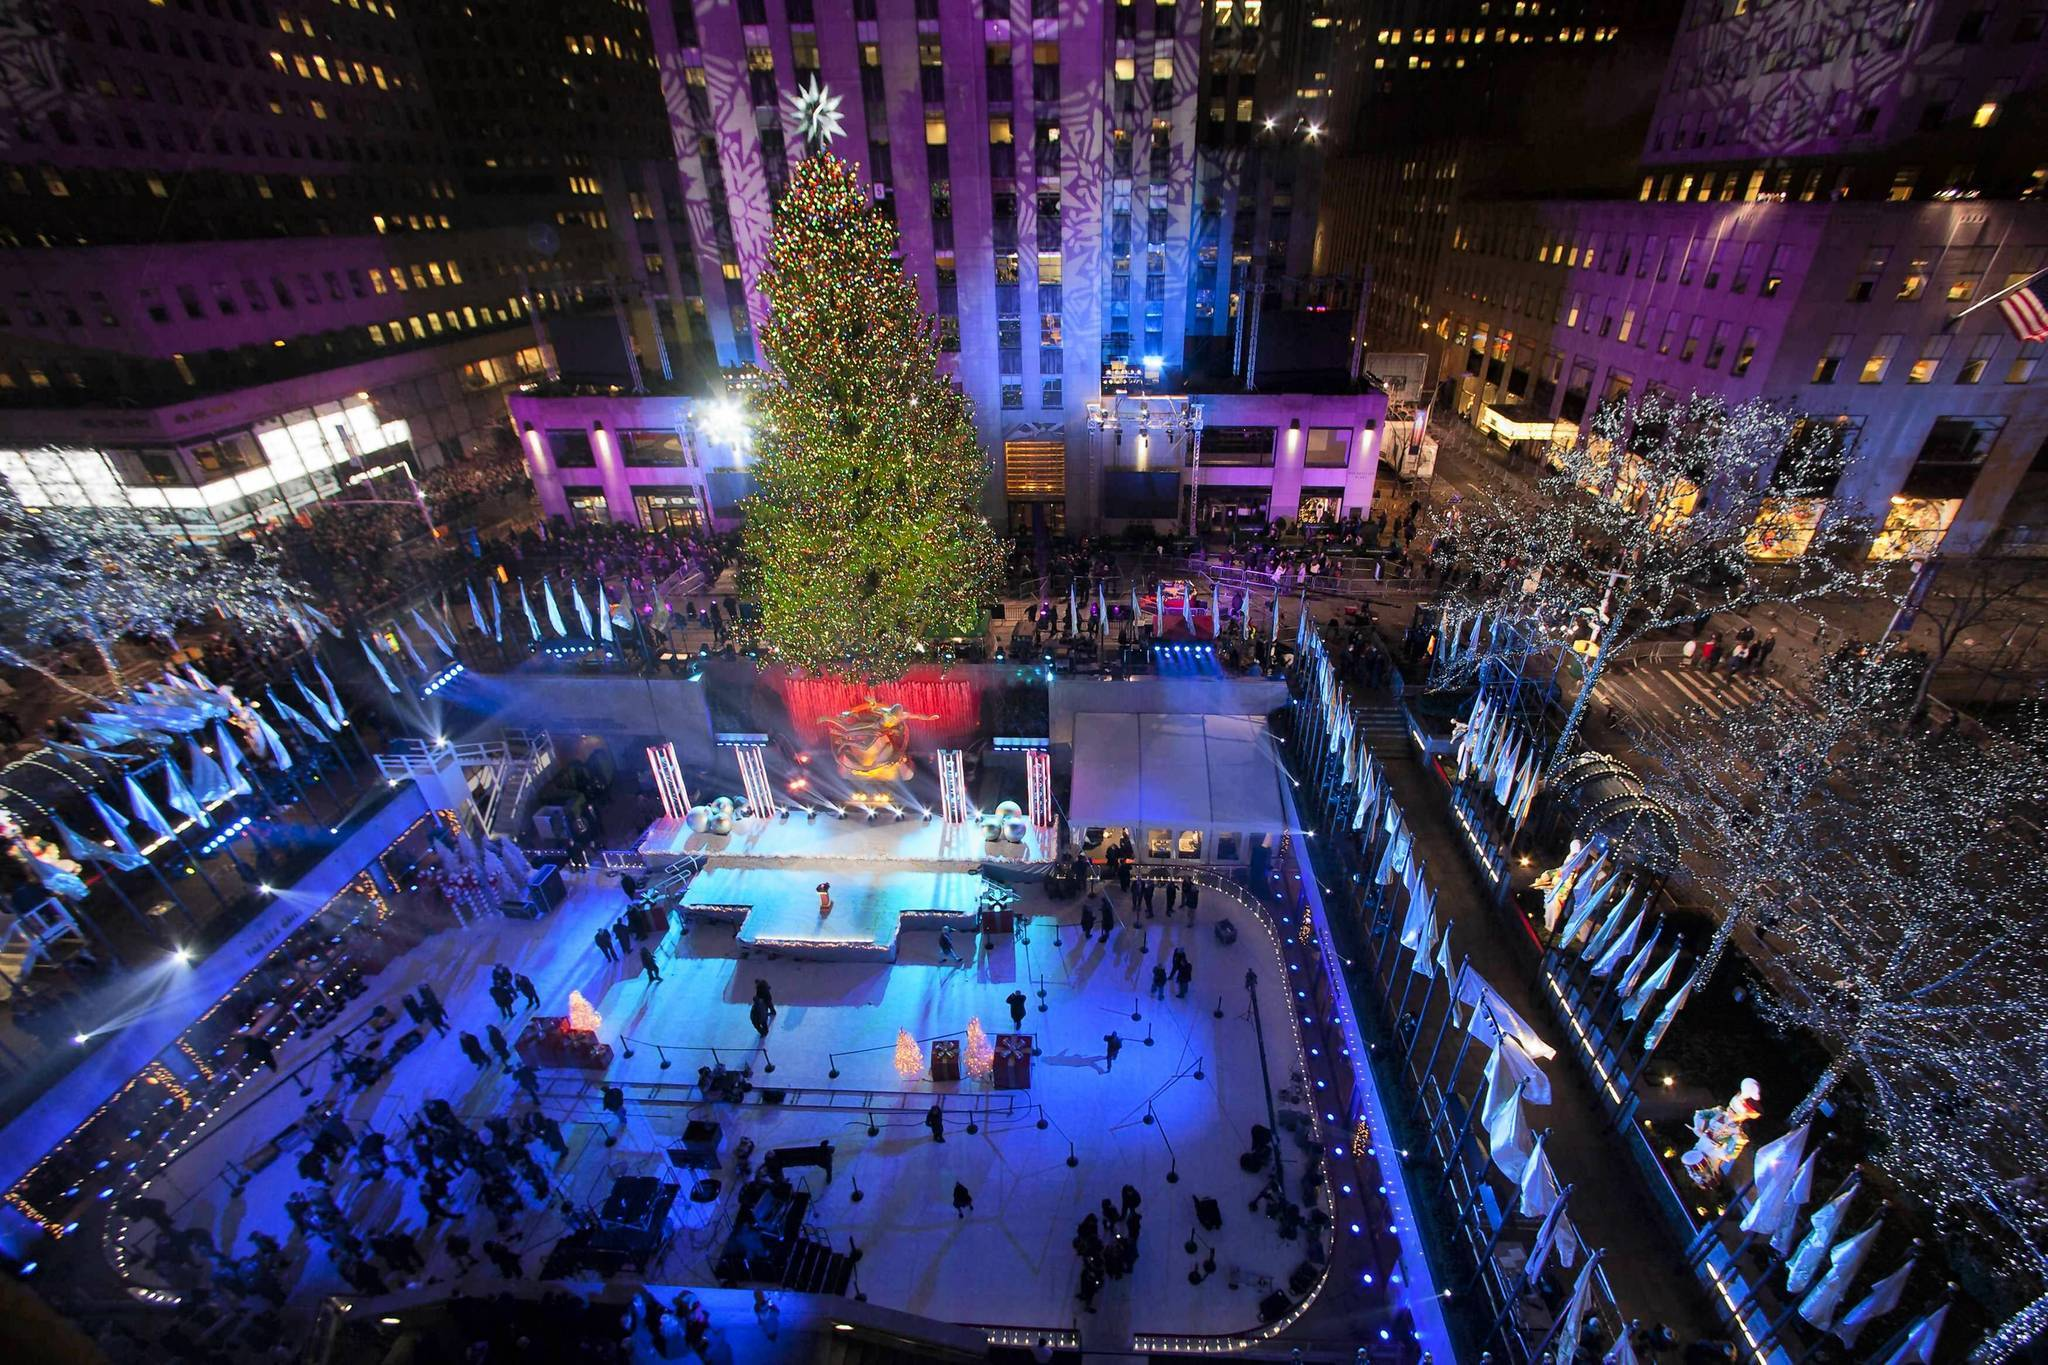 Pictures: Holiday lights from around the globe - Rockefeller Center tree lighting ceremony